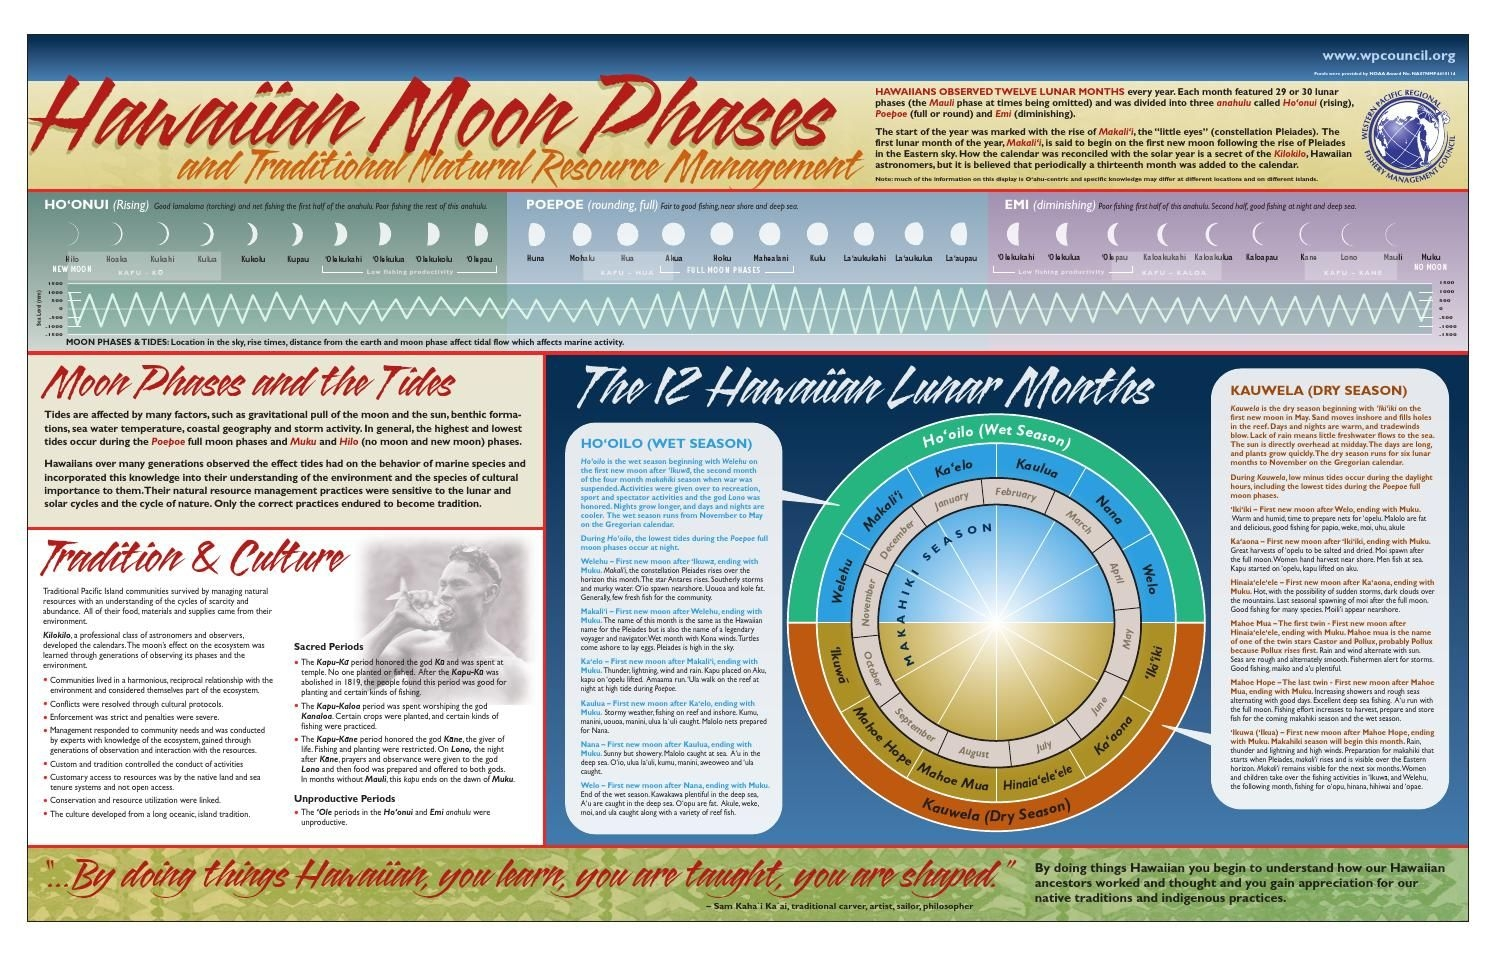 Hawaiian Moon Phases And Traditional Resource Management By